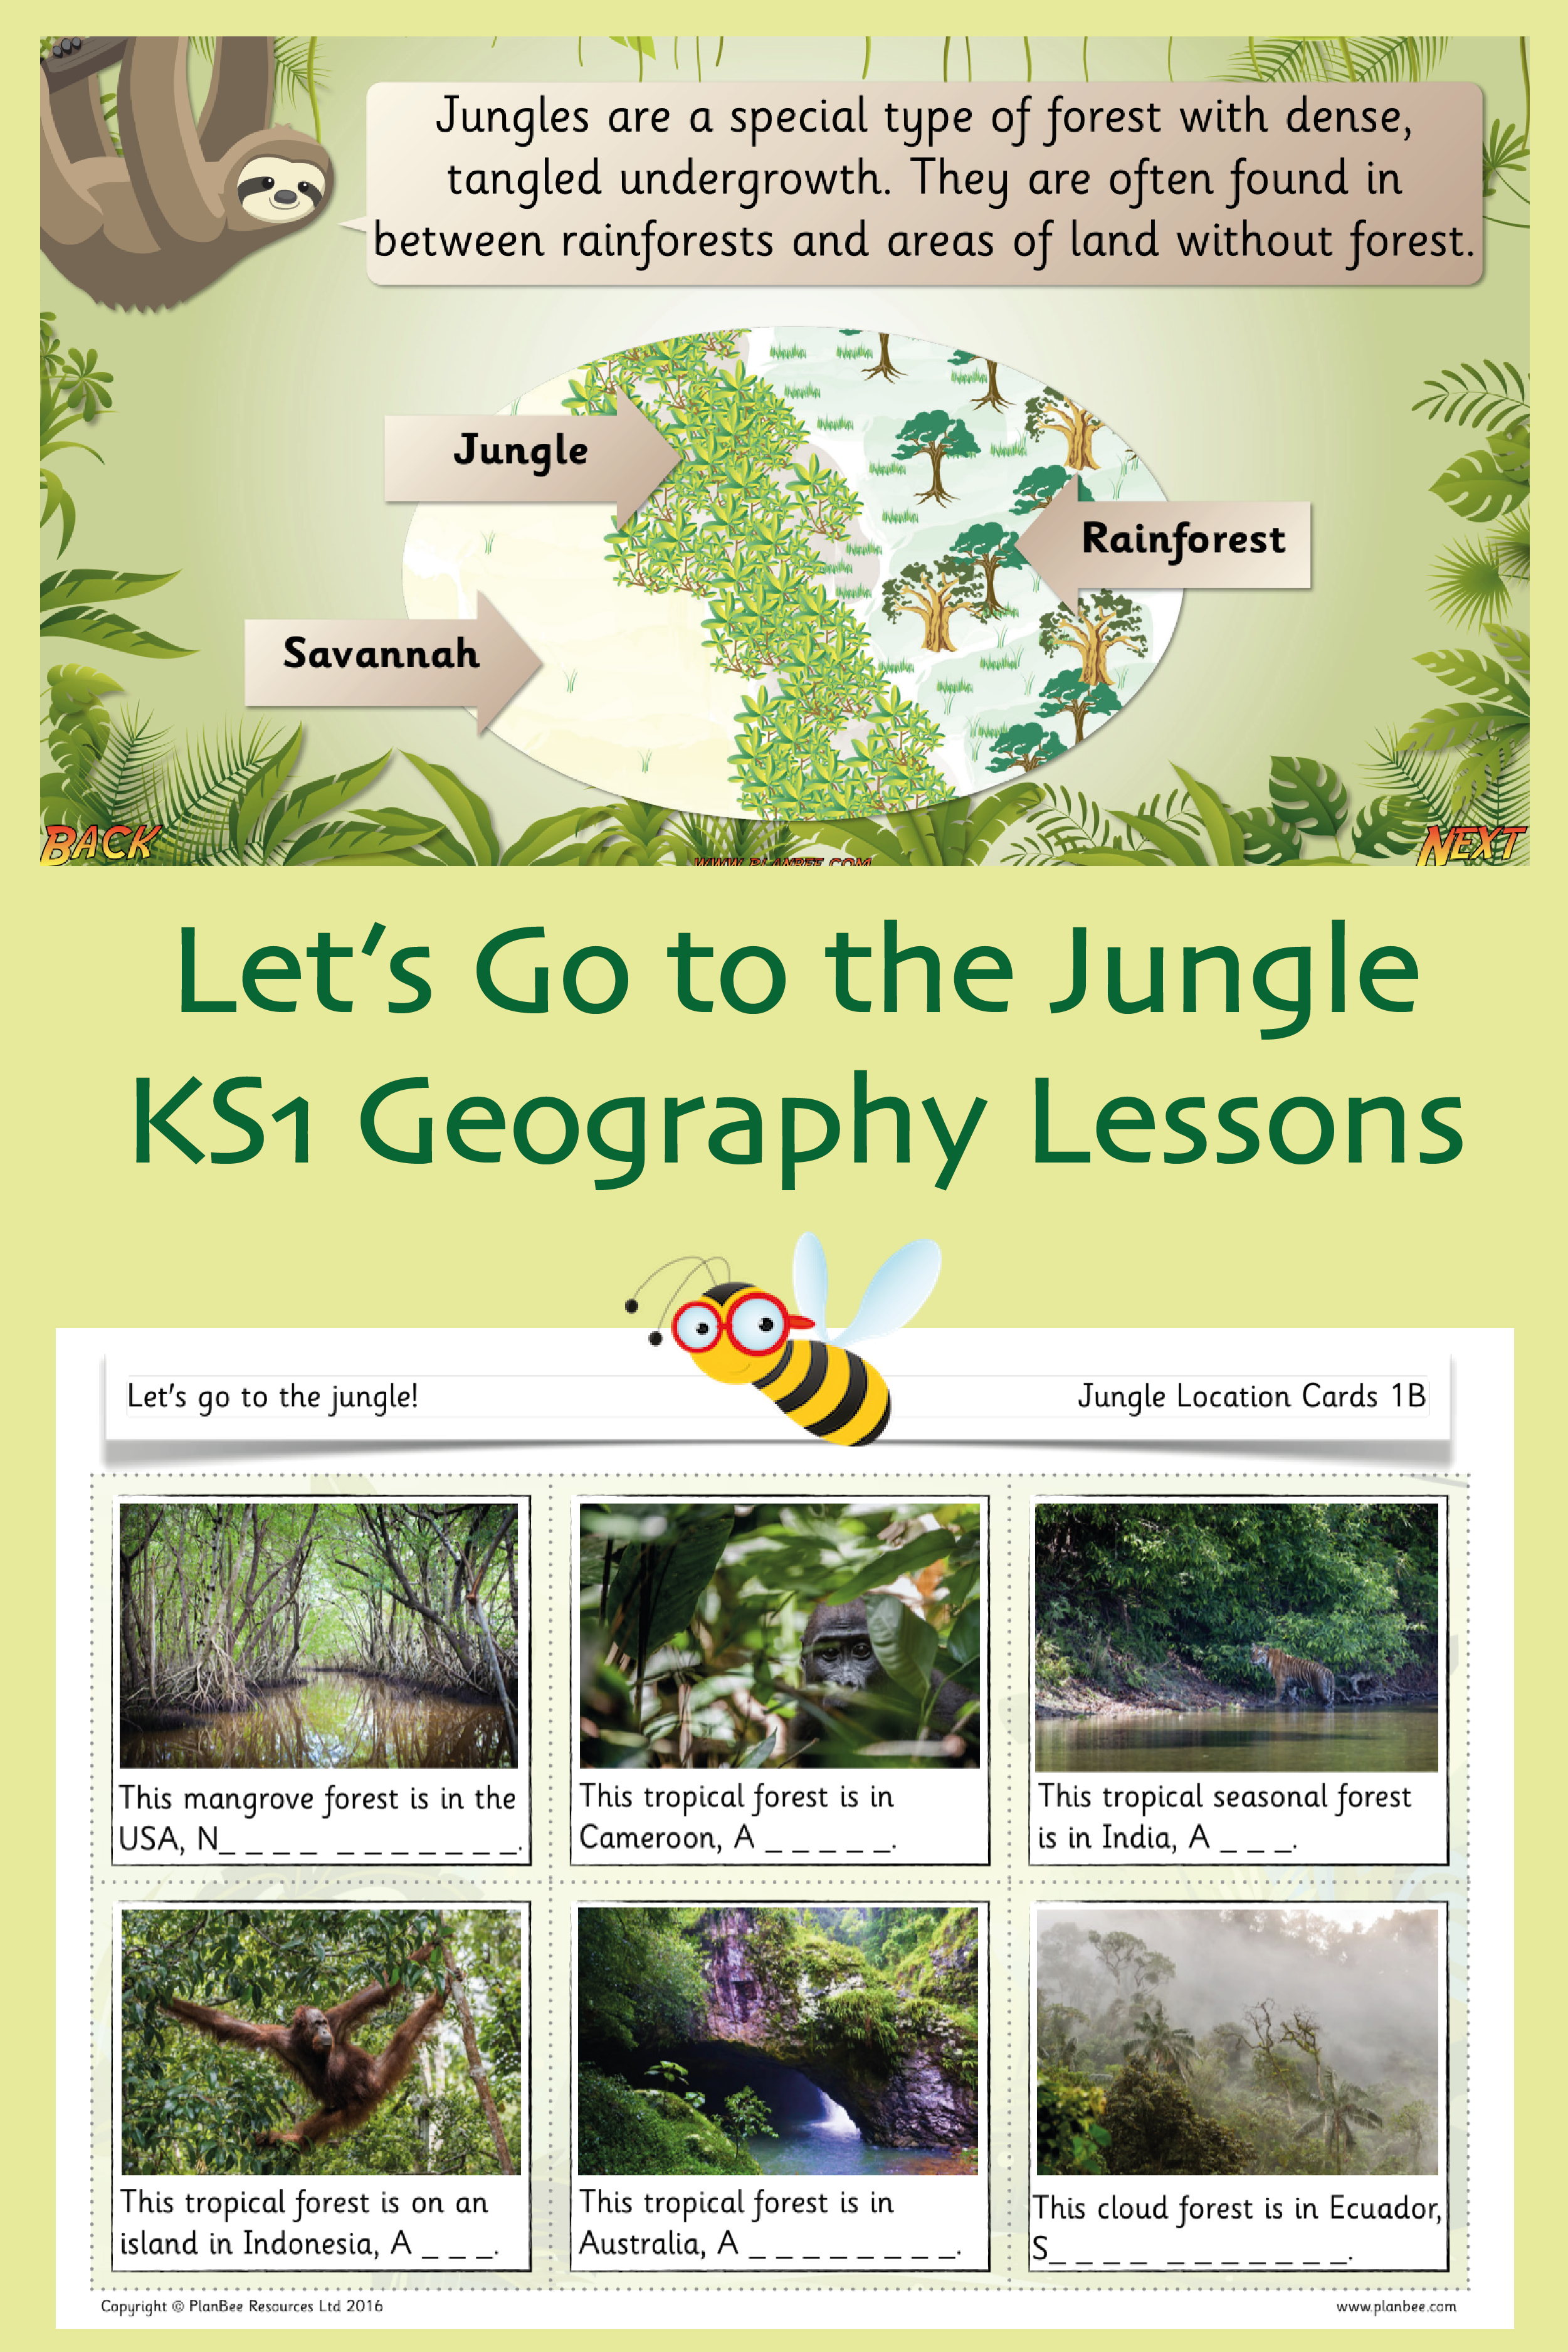 Let's go to the jungle Geography lessons, Geography for